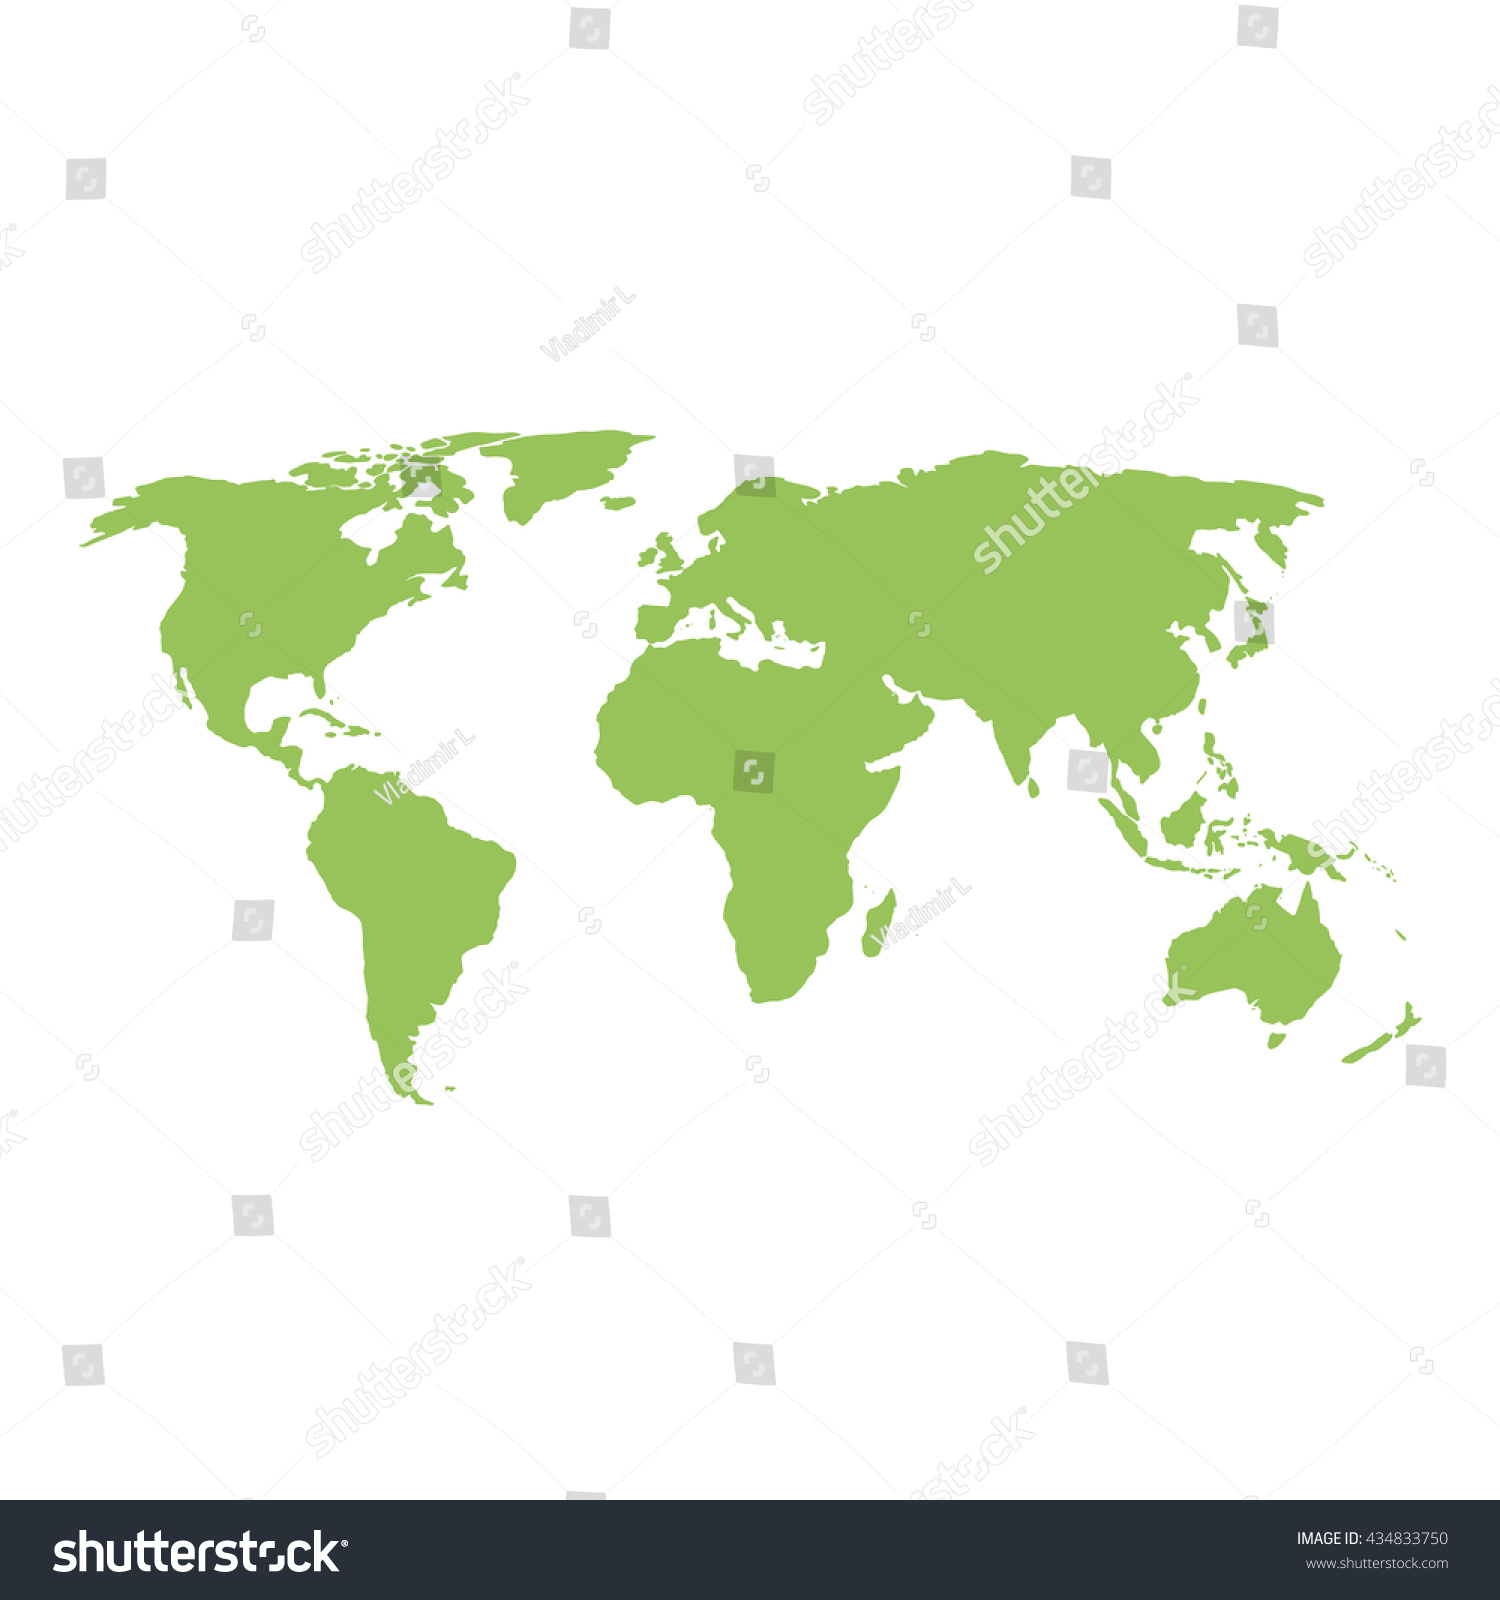 Earth Map Outline Silhouette World Stock Vector - Earth map outline